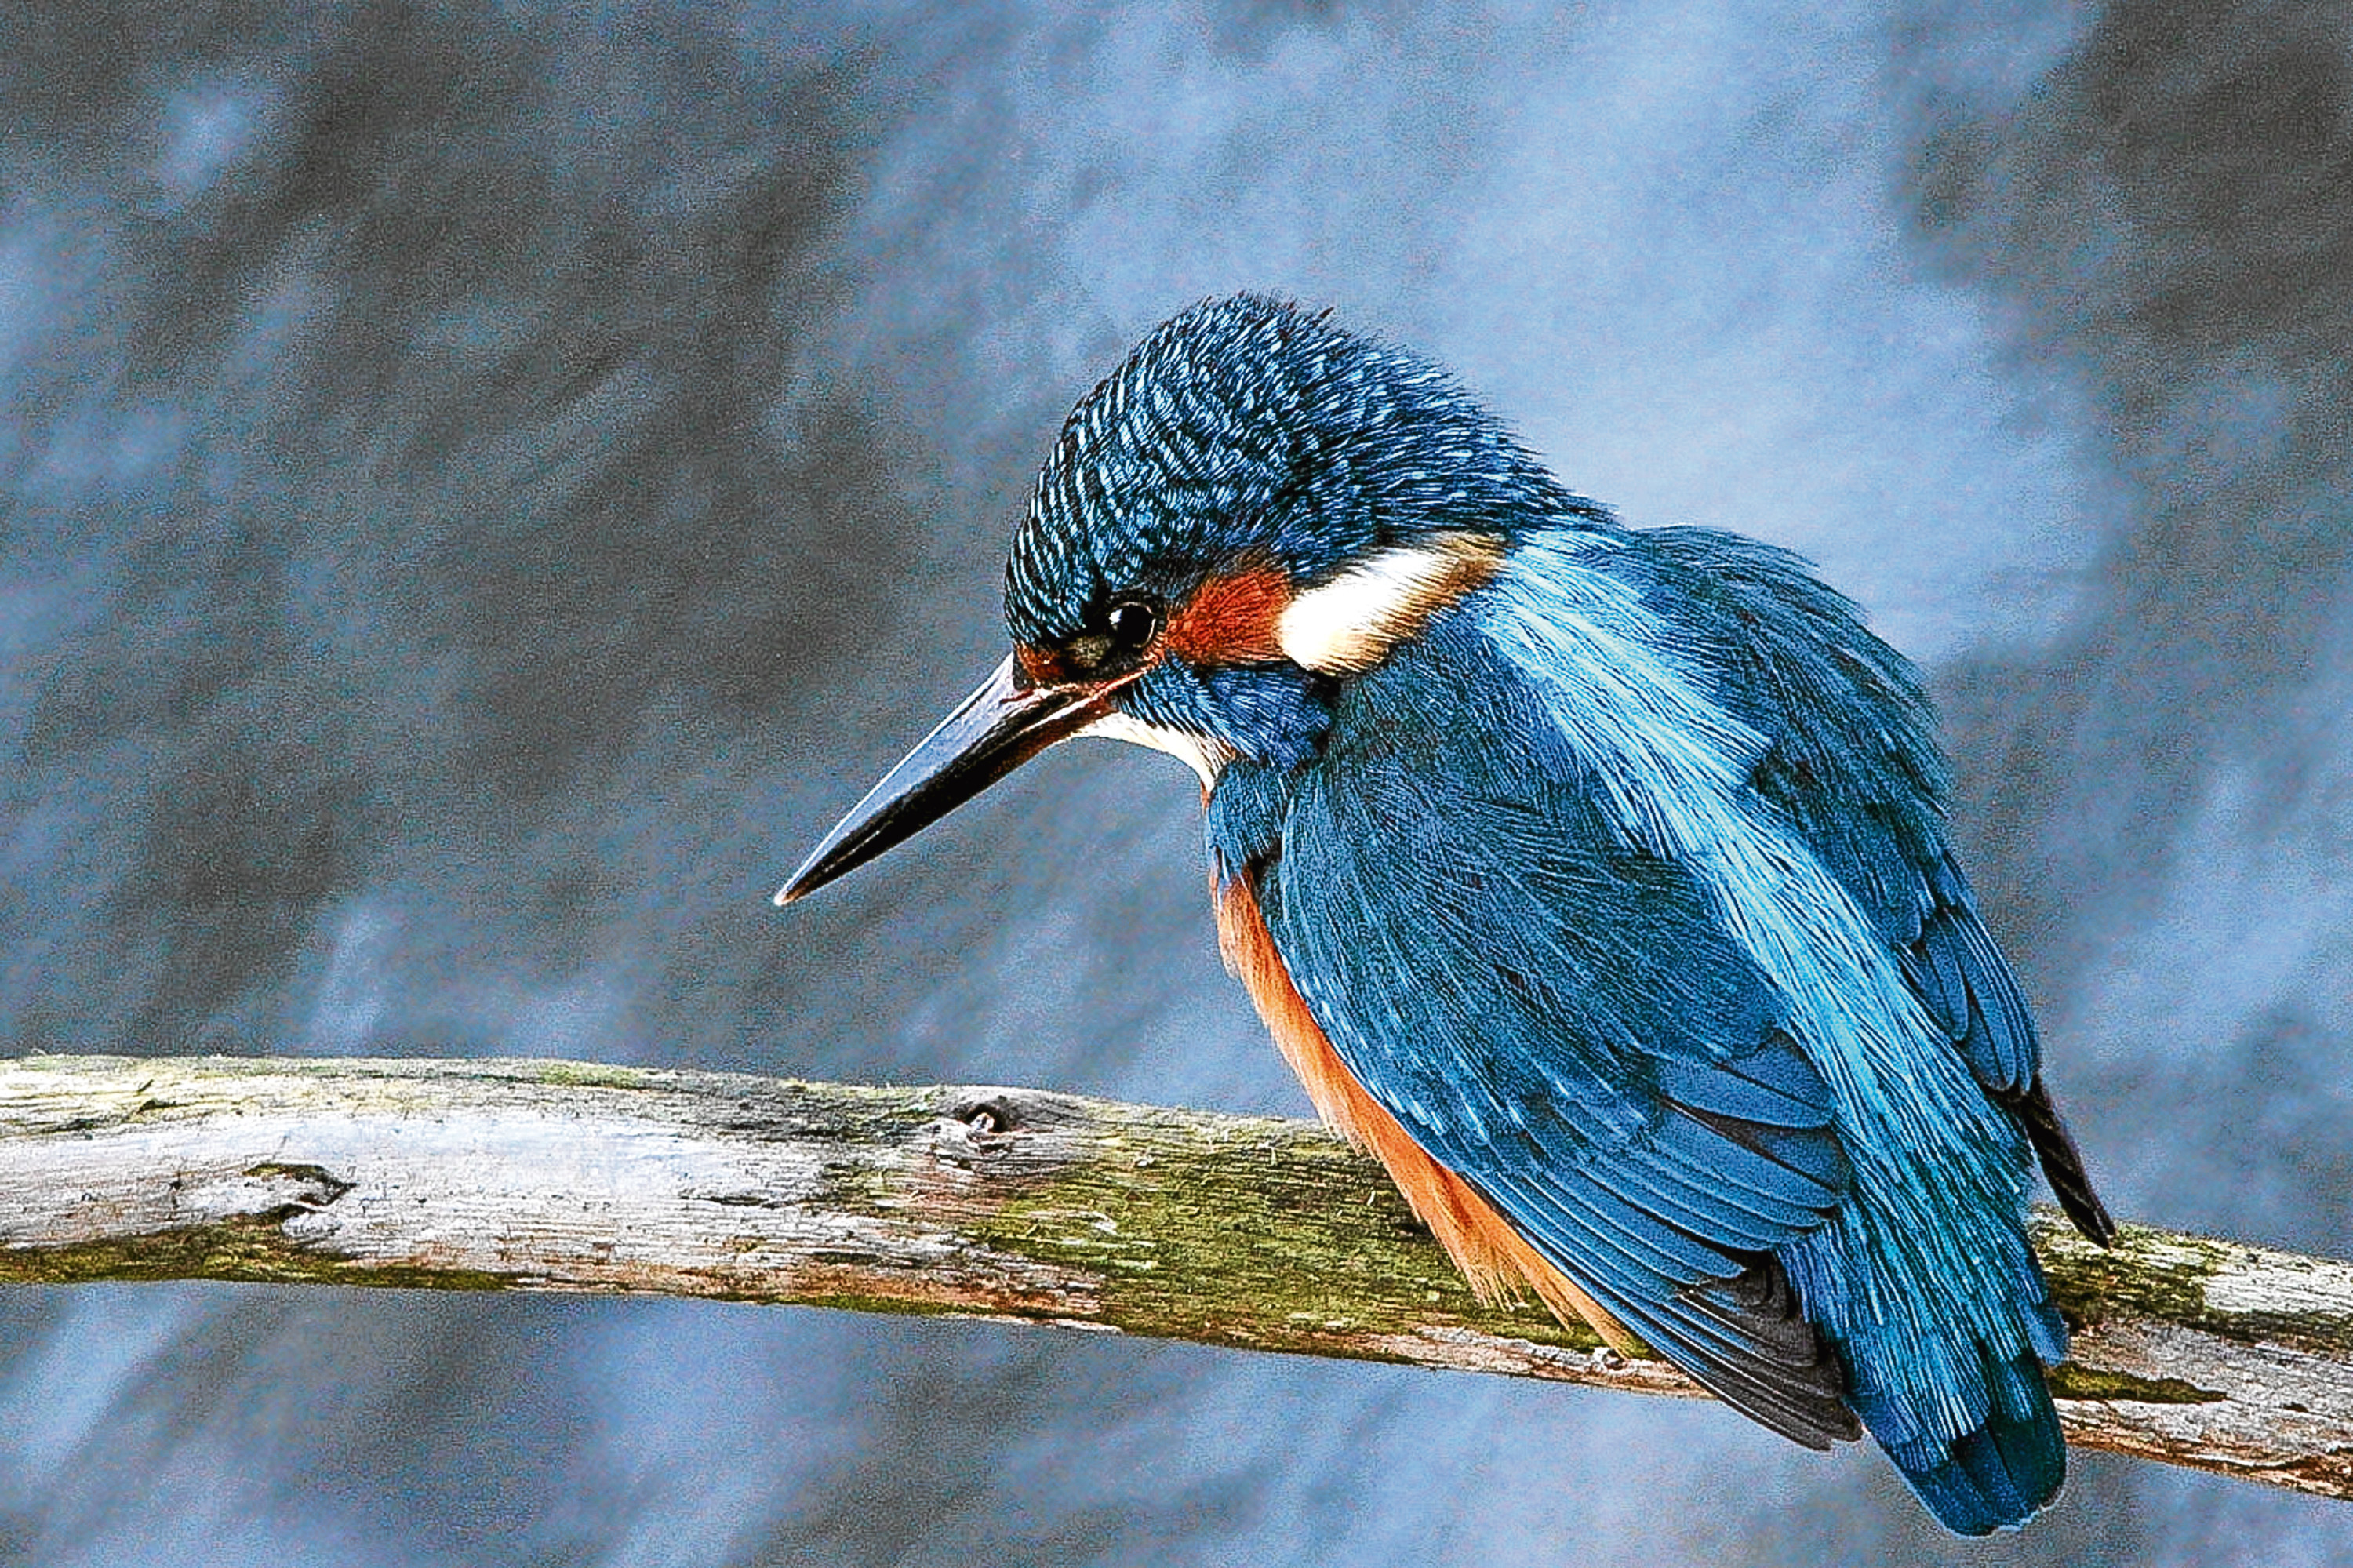 Jim has been captivated by the kingfisher's remarkable colours.